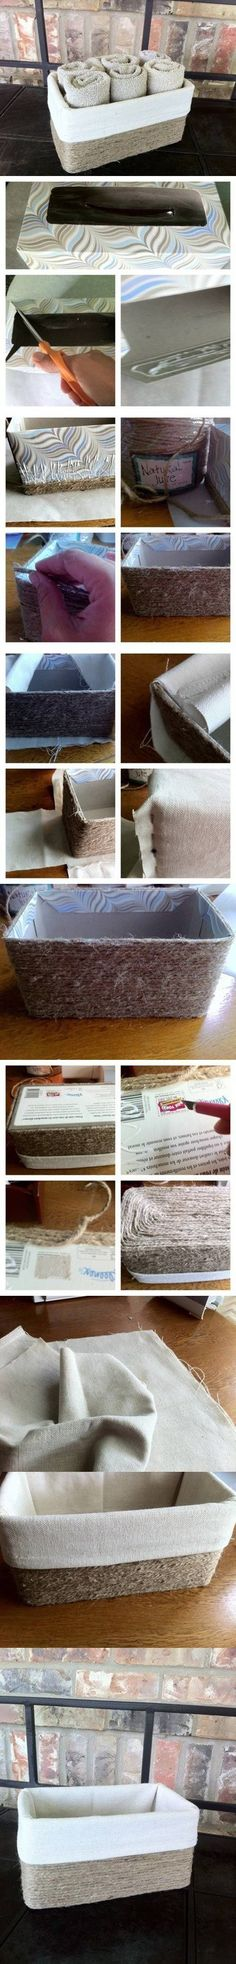 DIY Jute Basket from Cardboard Box DIY Projects / UsefulDIY.com